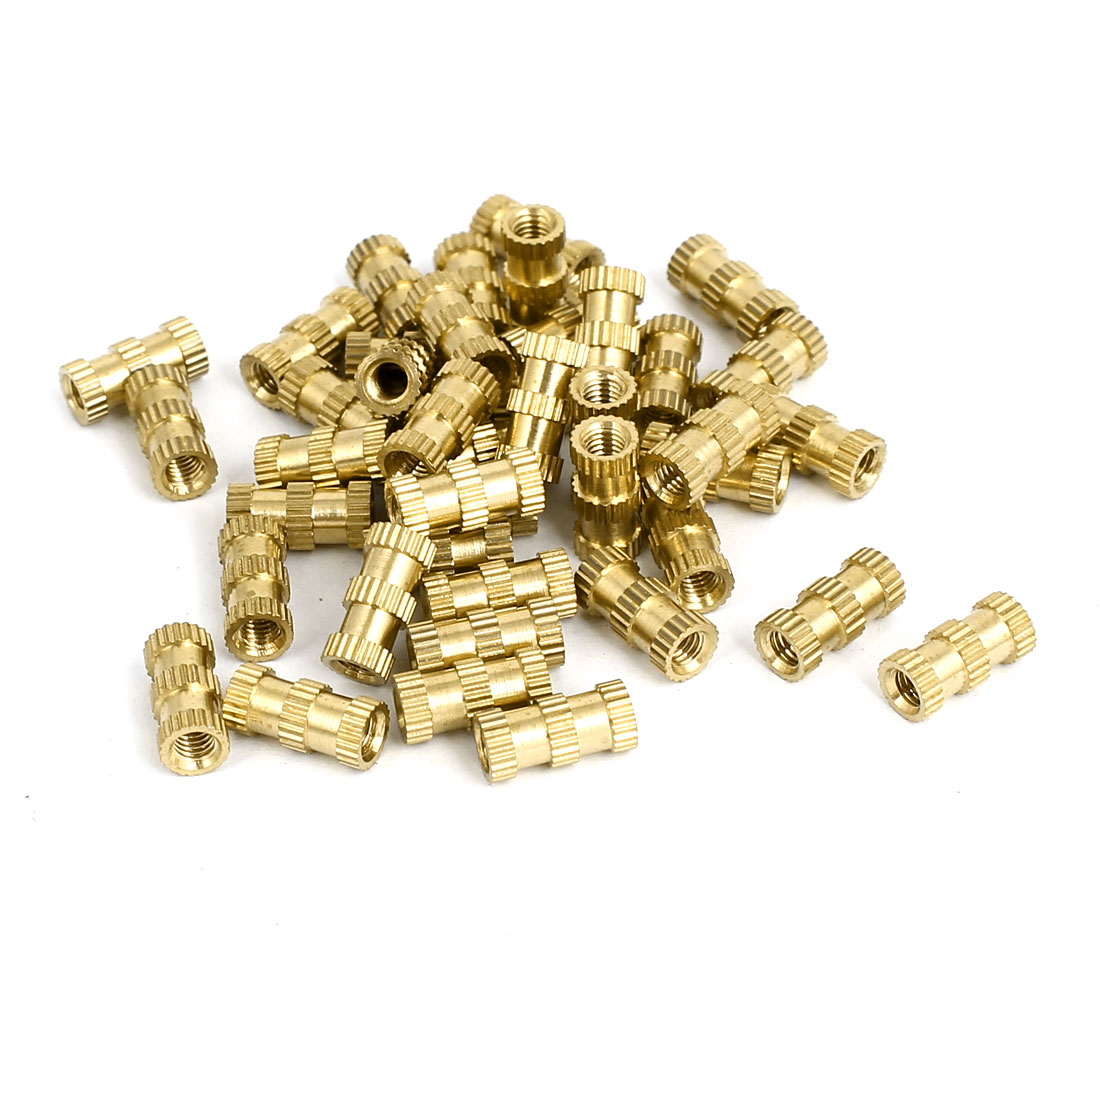 M3x10mmx4.8mm Brass Knurled Threaded Nut Insert Embedded Nuts Gold Tone 40pcs